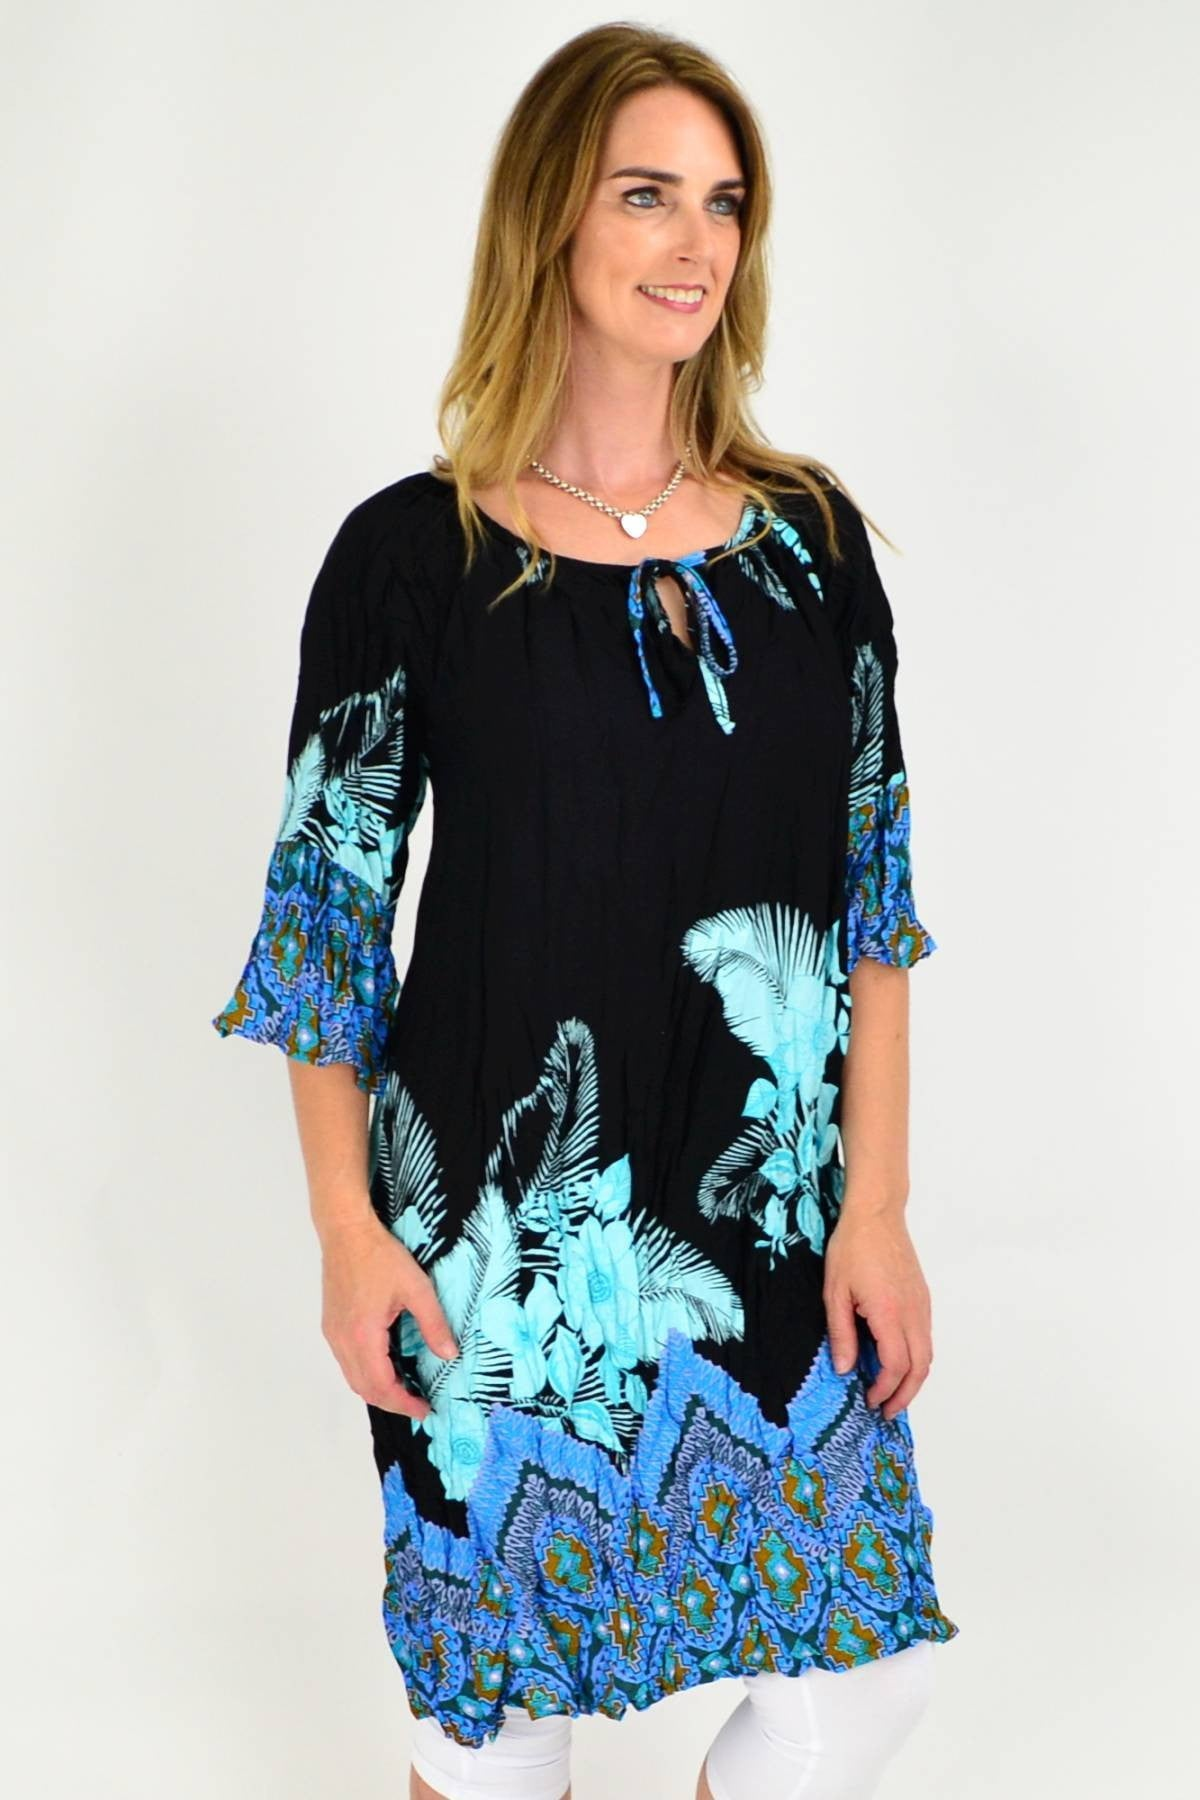 Blue Abstract Floral Crinkle Tie Tunic Dress | I Love Tunics | Tunic Tops | Tunic Dresses | Women's Tops | Plus Size Australia | Mature Fashion